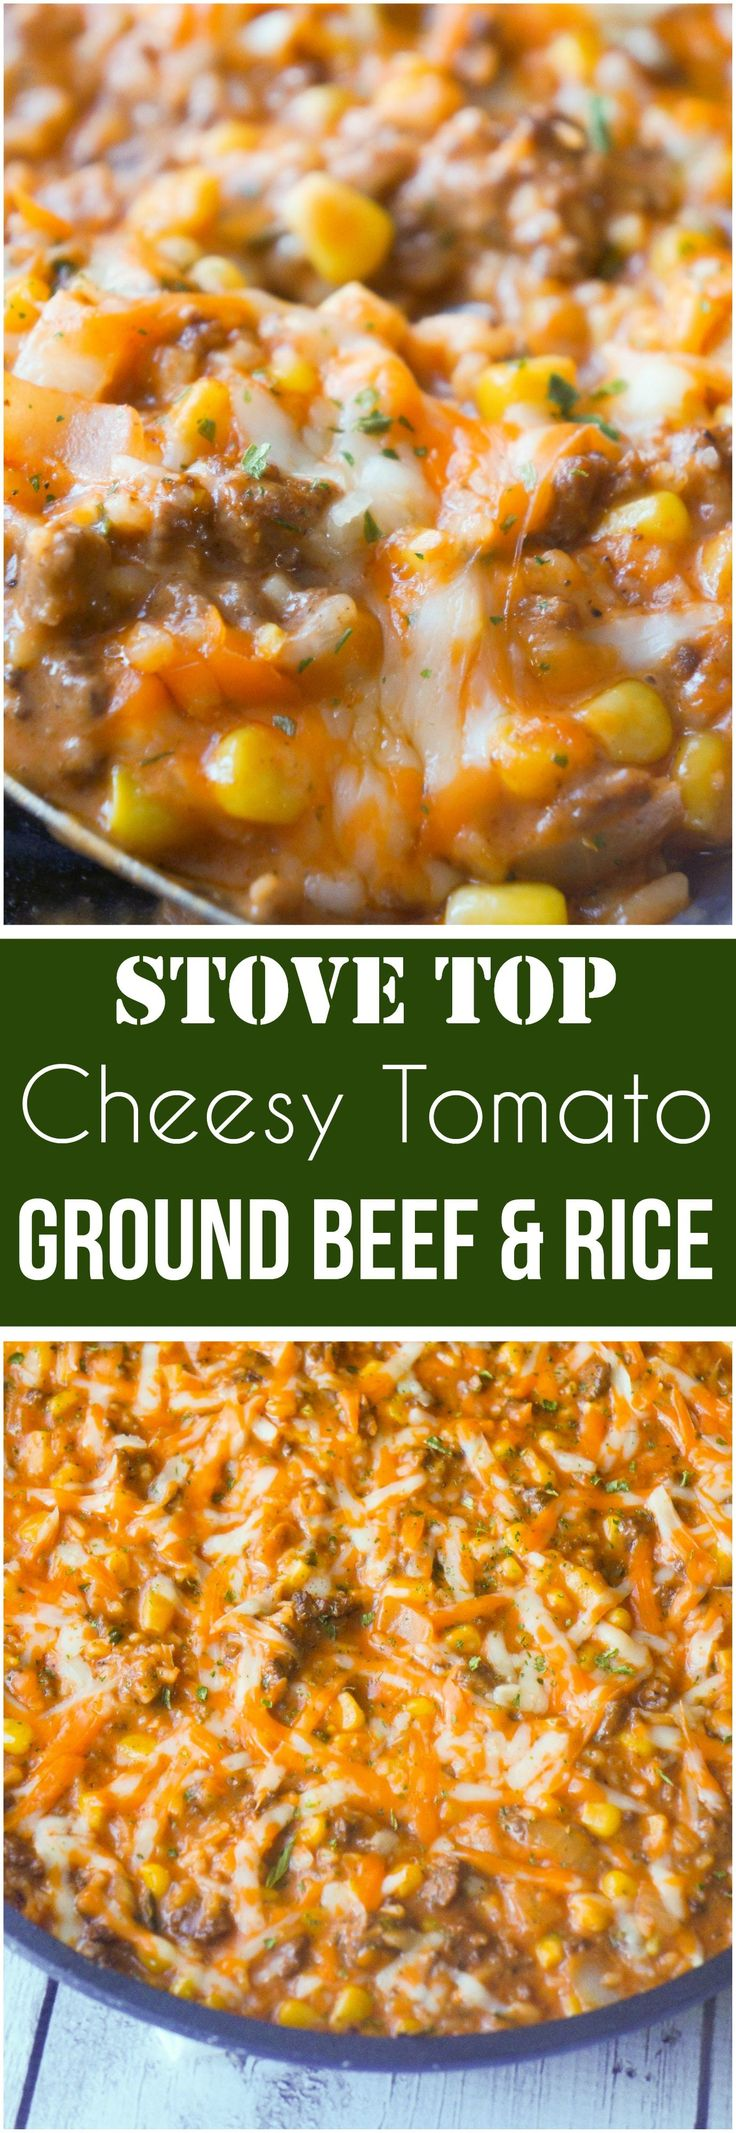 Cheesy Tomato Ground Beef and Rice is an easy stove top dinner recipe packed with flavour. This ground beef dish is made with cream of tomato soup, canned corn, instant rice and loaded with cheddar cheese.